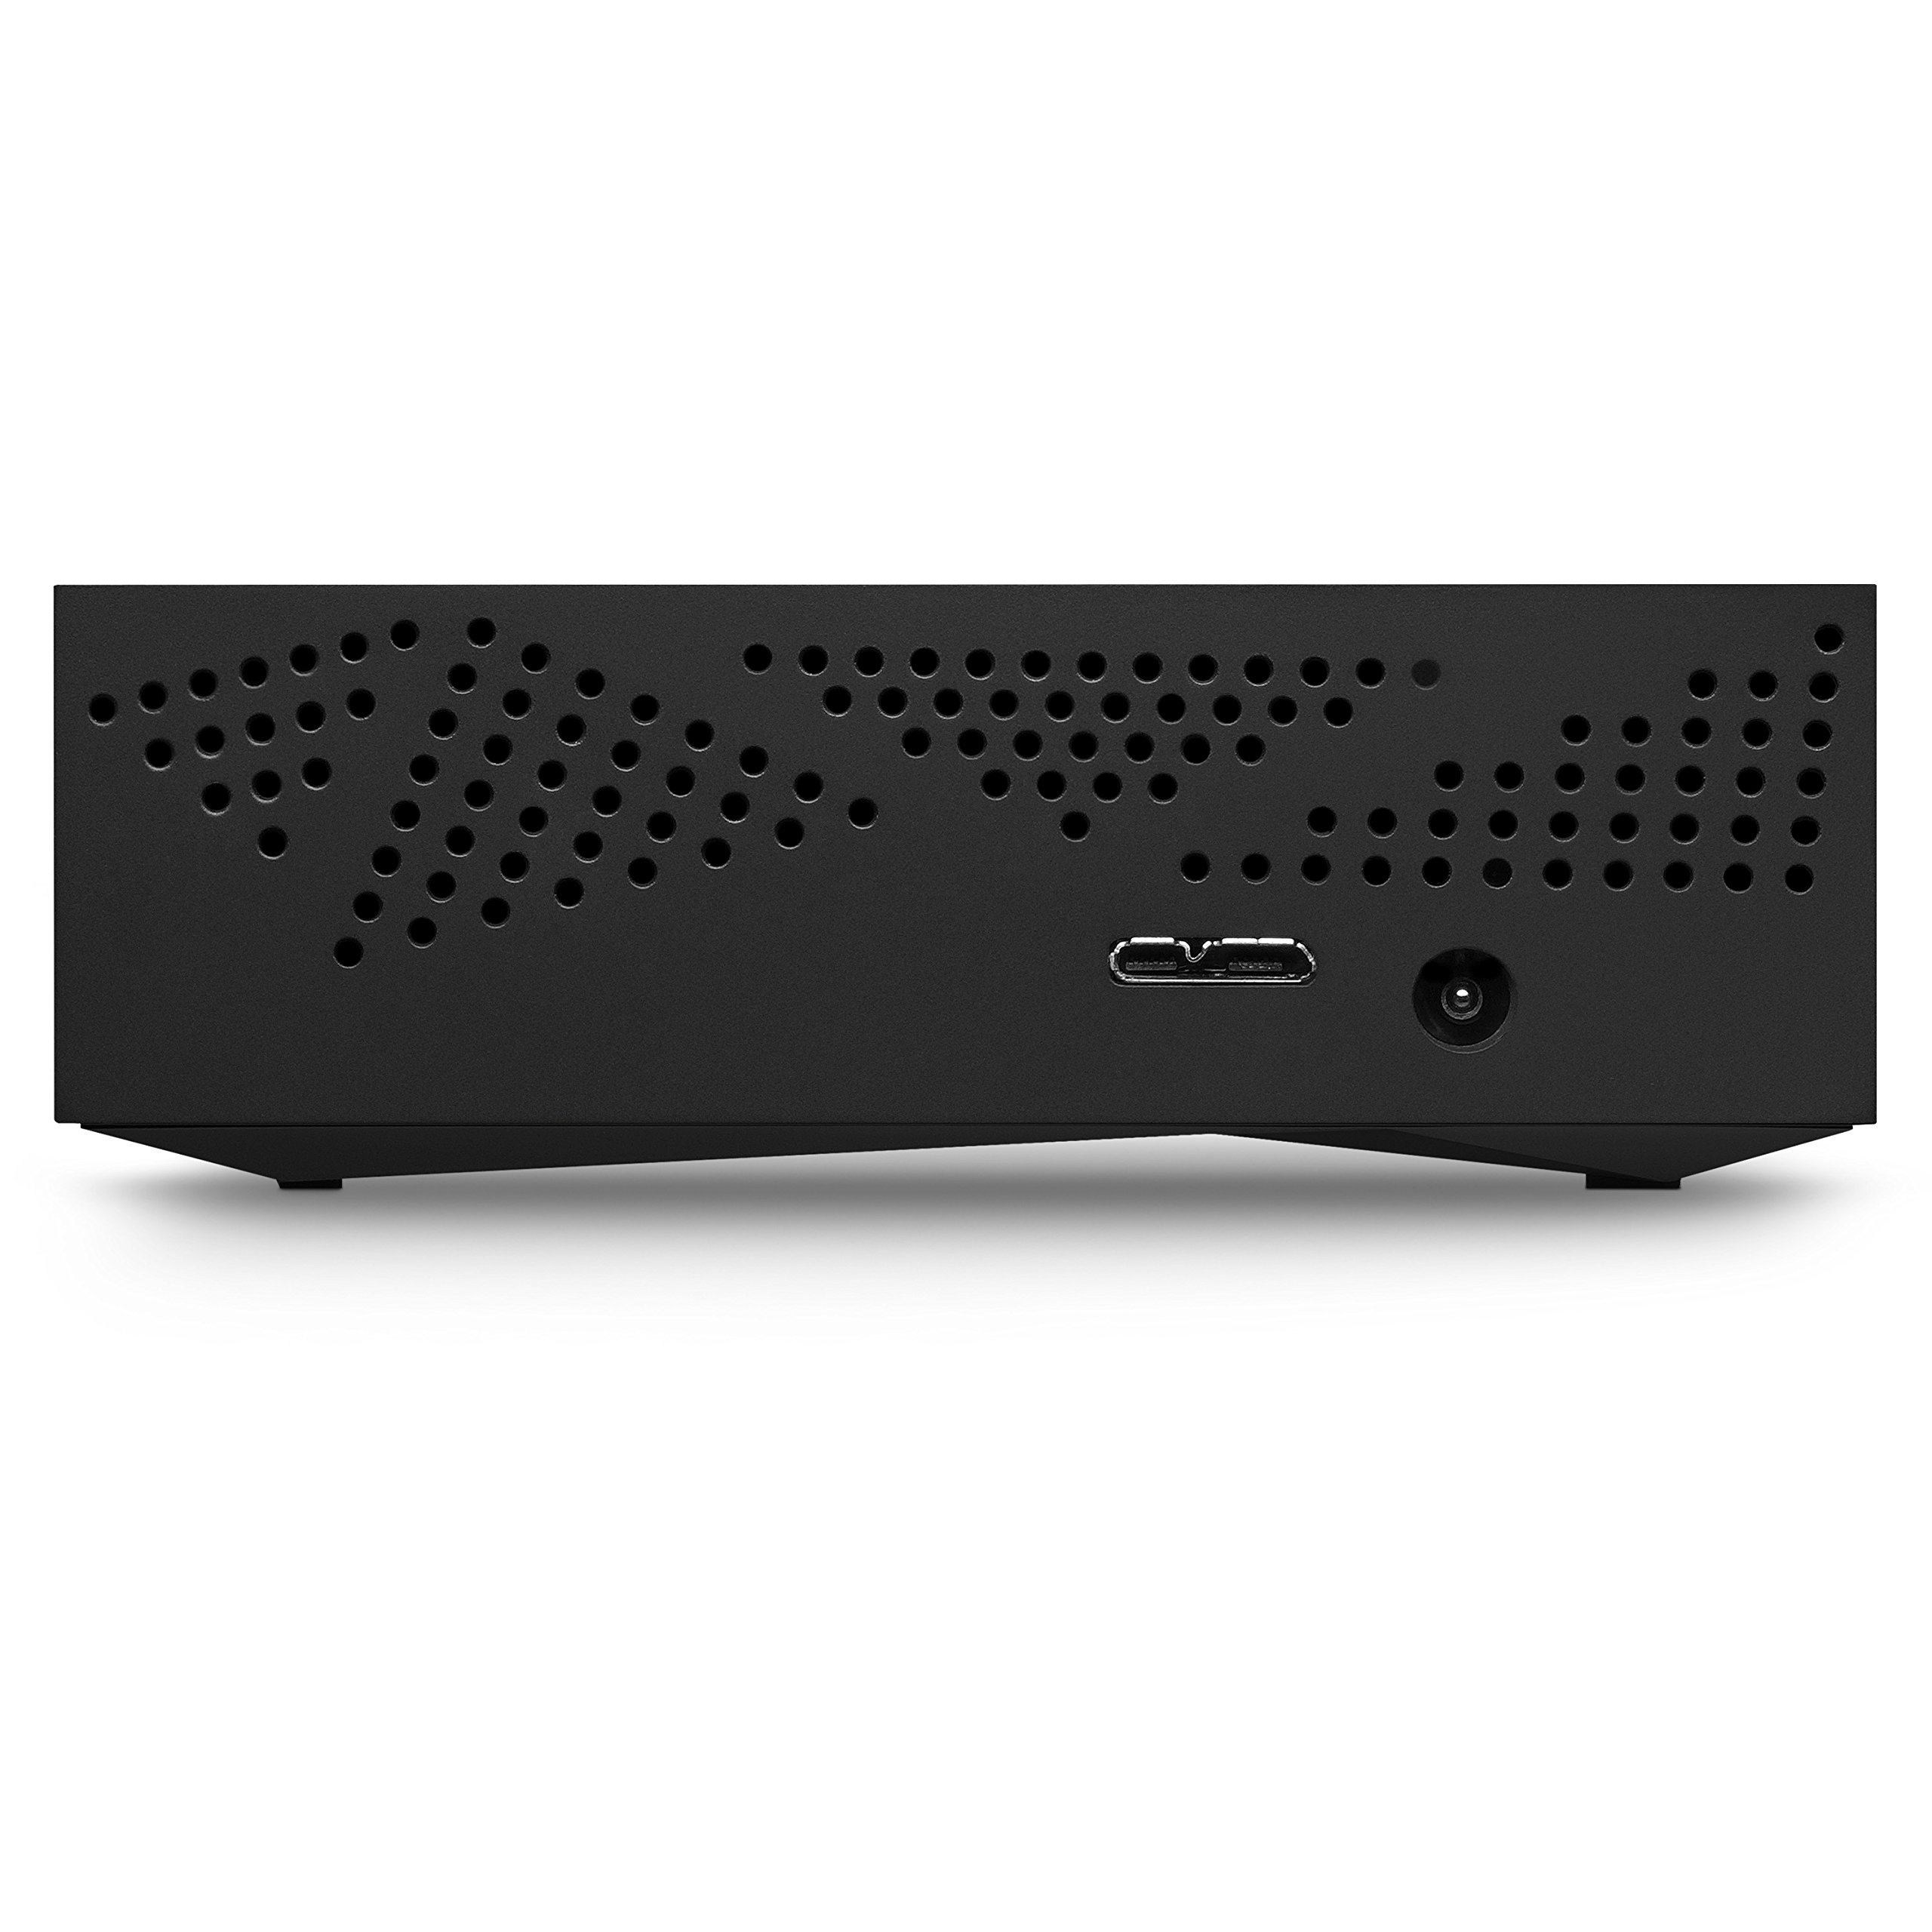 Seagate Desktop 8TB External Hard Drive HDD – USB 3.0 for PC Laptop and Mac (STGY8000400) by Seagate (Image #3)